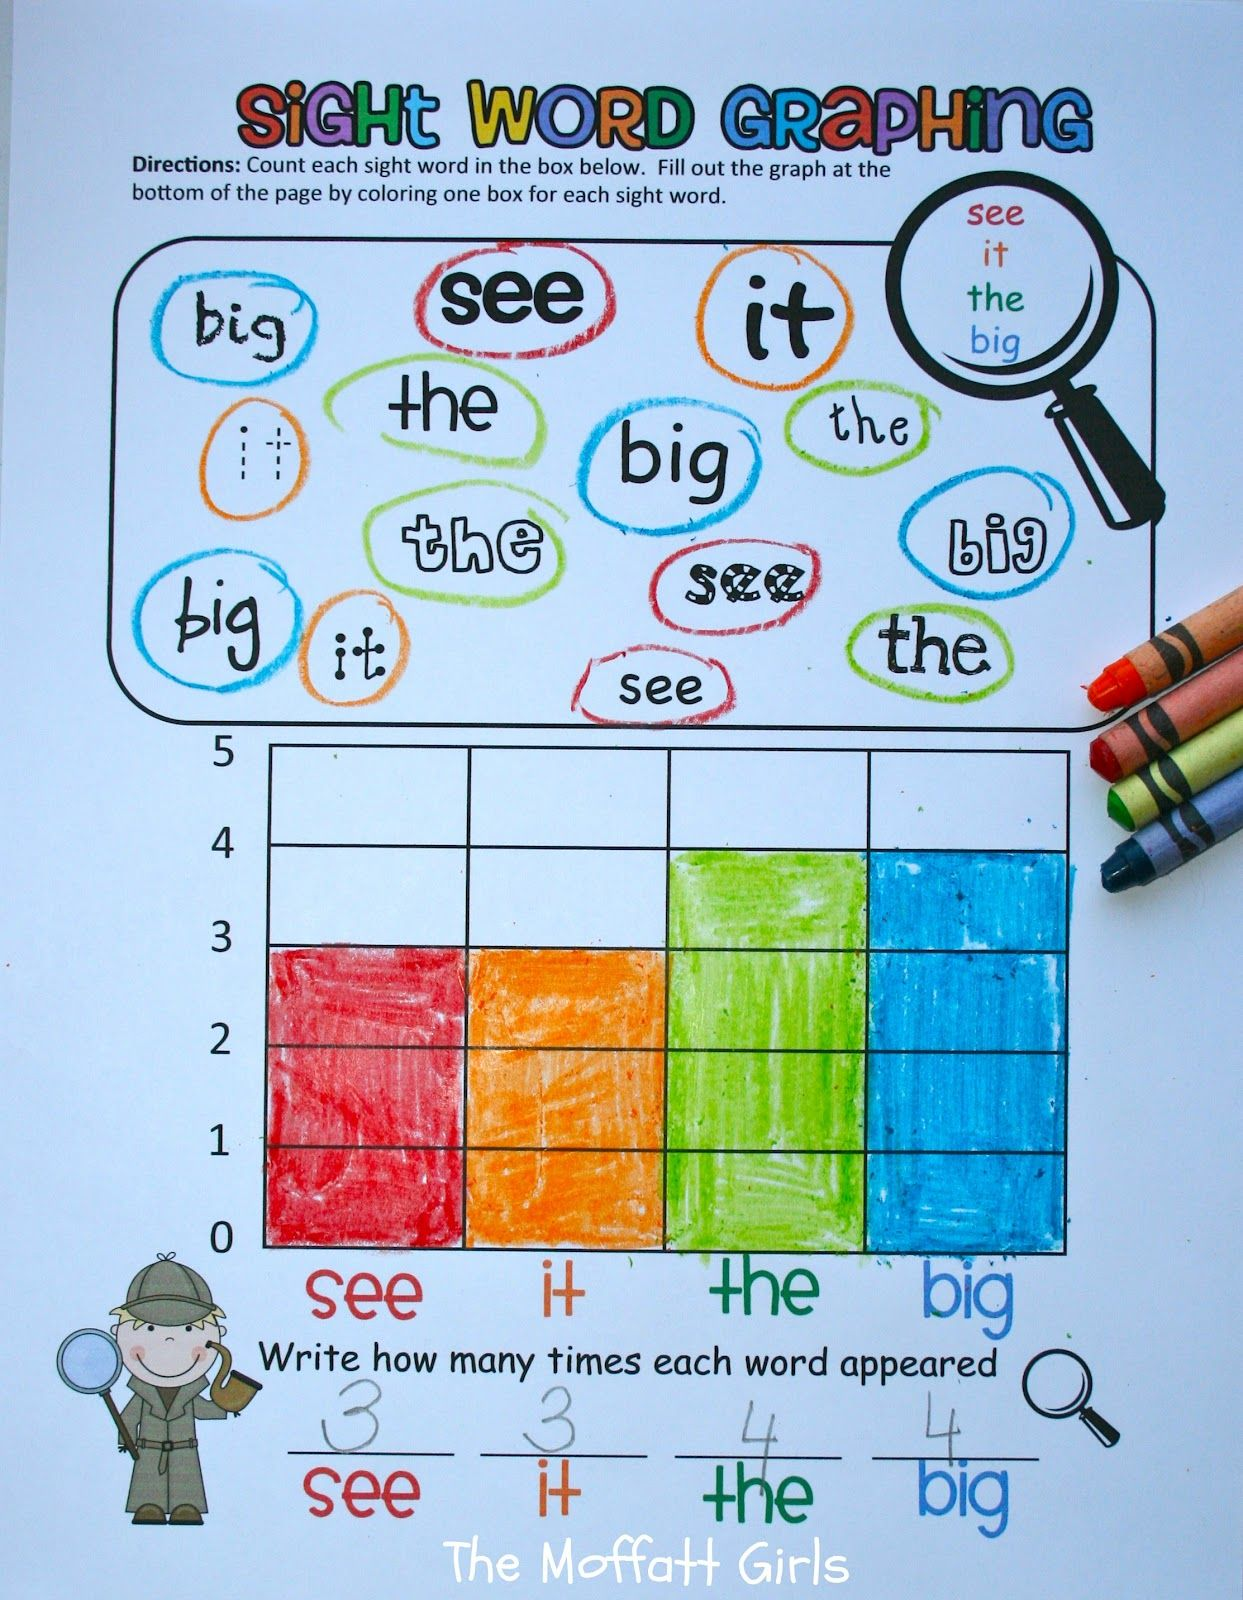 sight word graphing learning sight words and practicing graphing